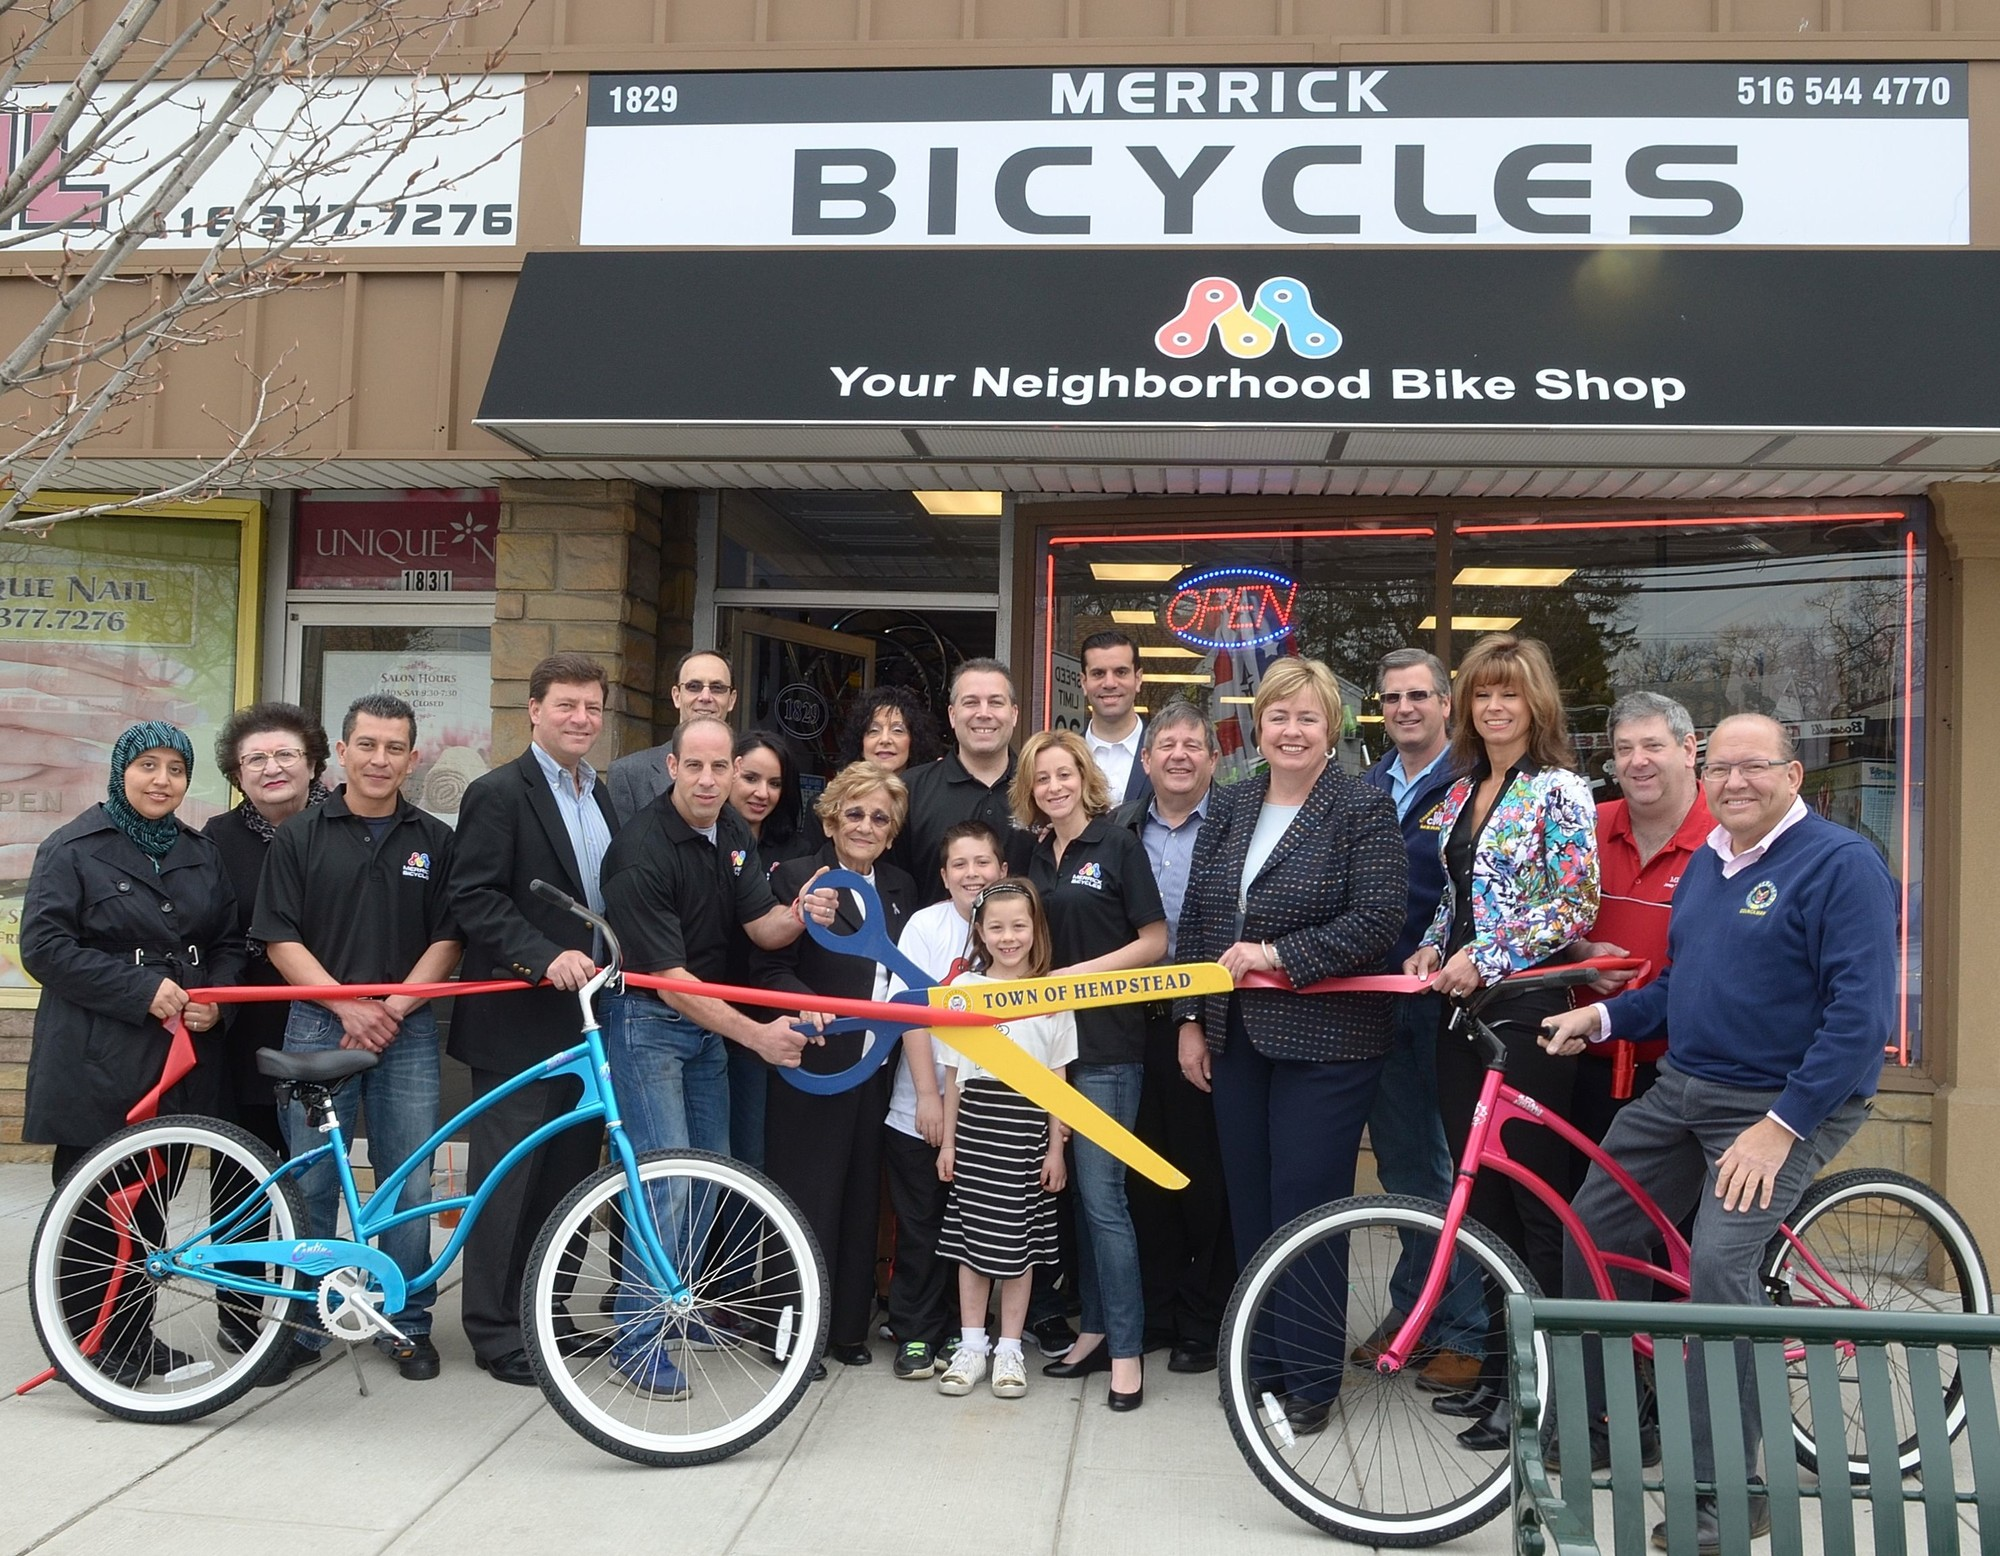 Town of Hempstead Supervisor Kate Murray, fifth from right, joined  Merrick Bicycles owners Mike Hammer, fifth from left, front, and Dan Yuricic, center, their families, other elected leaders and Chamber of Commerce officers in officially opening the business.